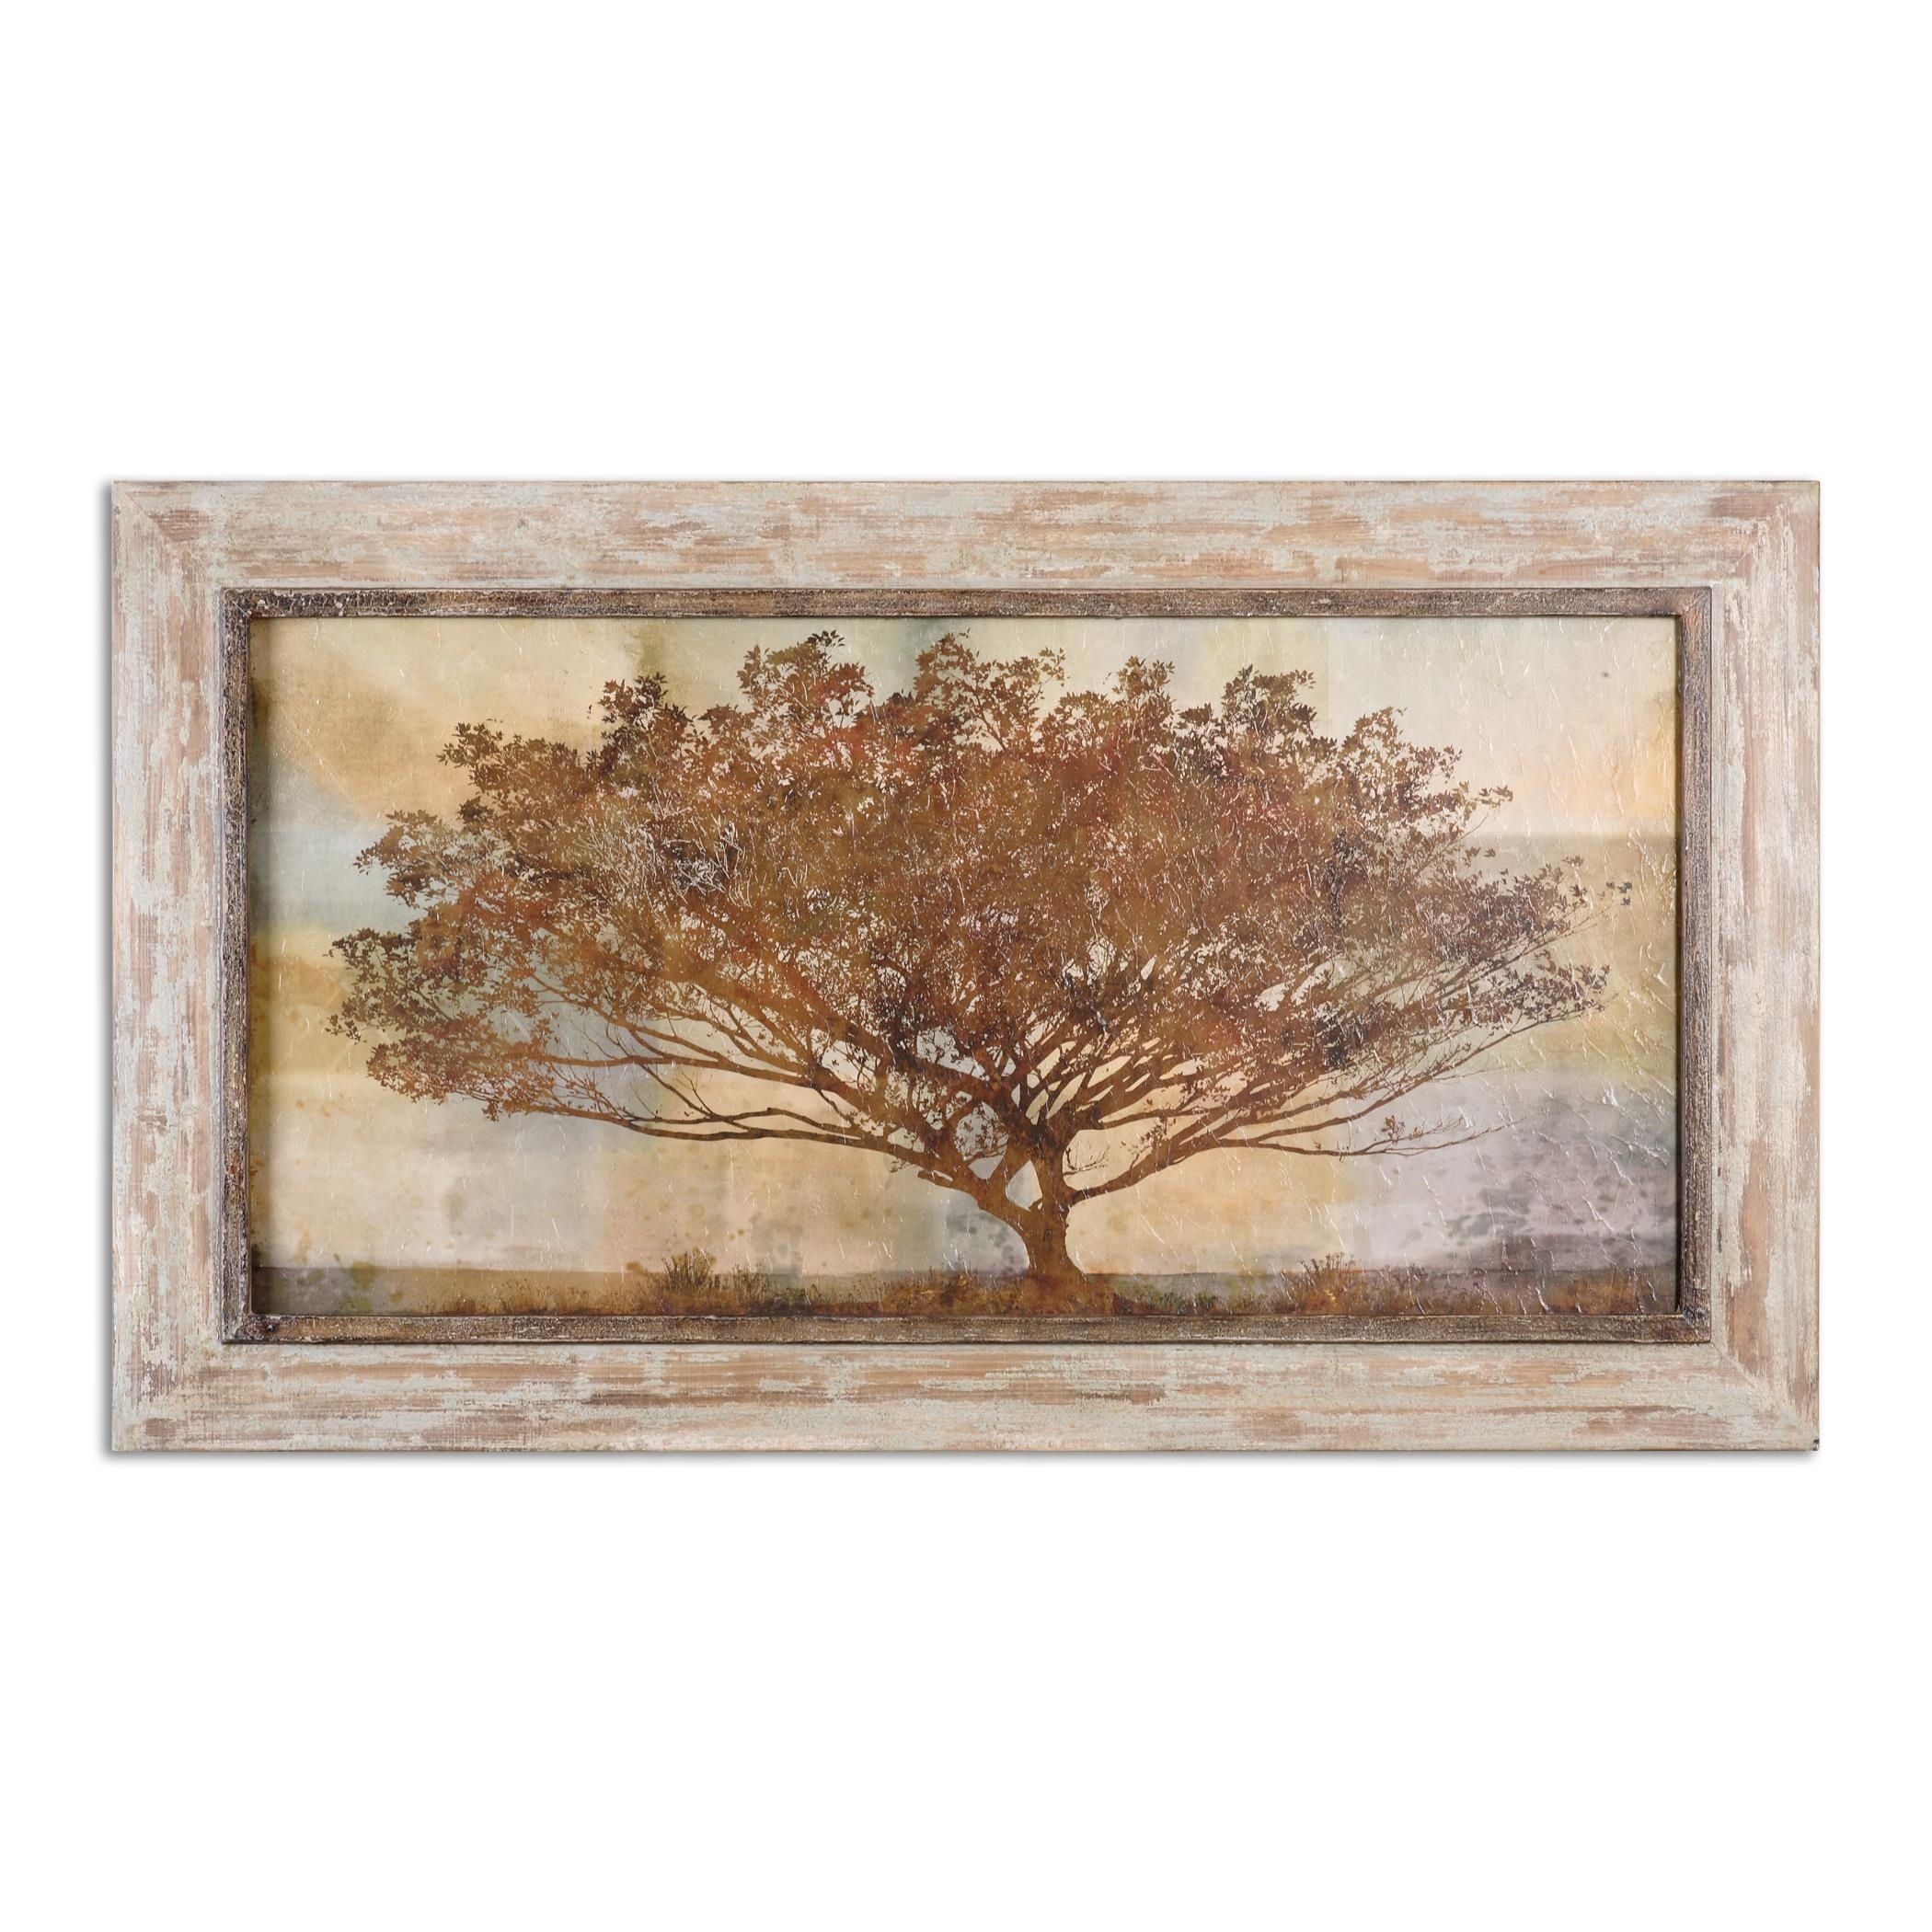 Uttermost Art 51100 Autumn Radiance Sepia Framed Art | Dunk & Bright regarding Uttermost Wall Art (Image 9 of 20)